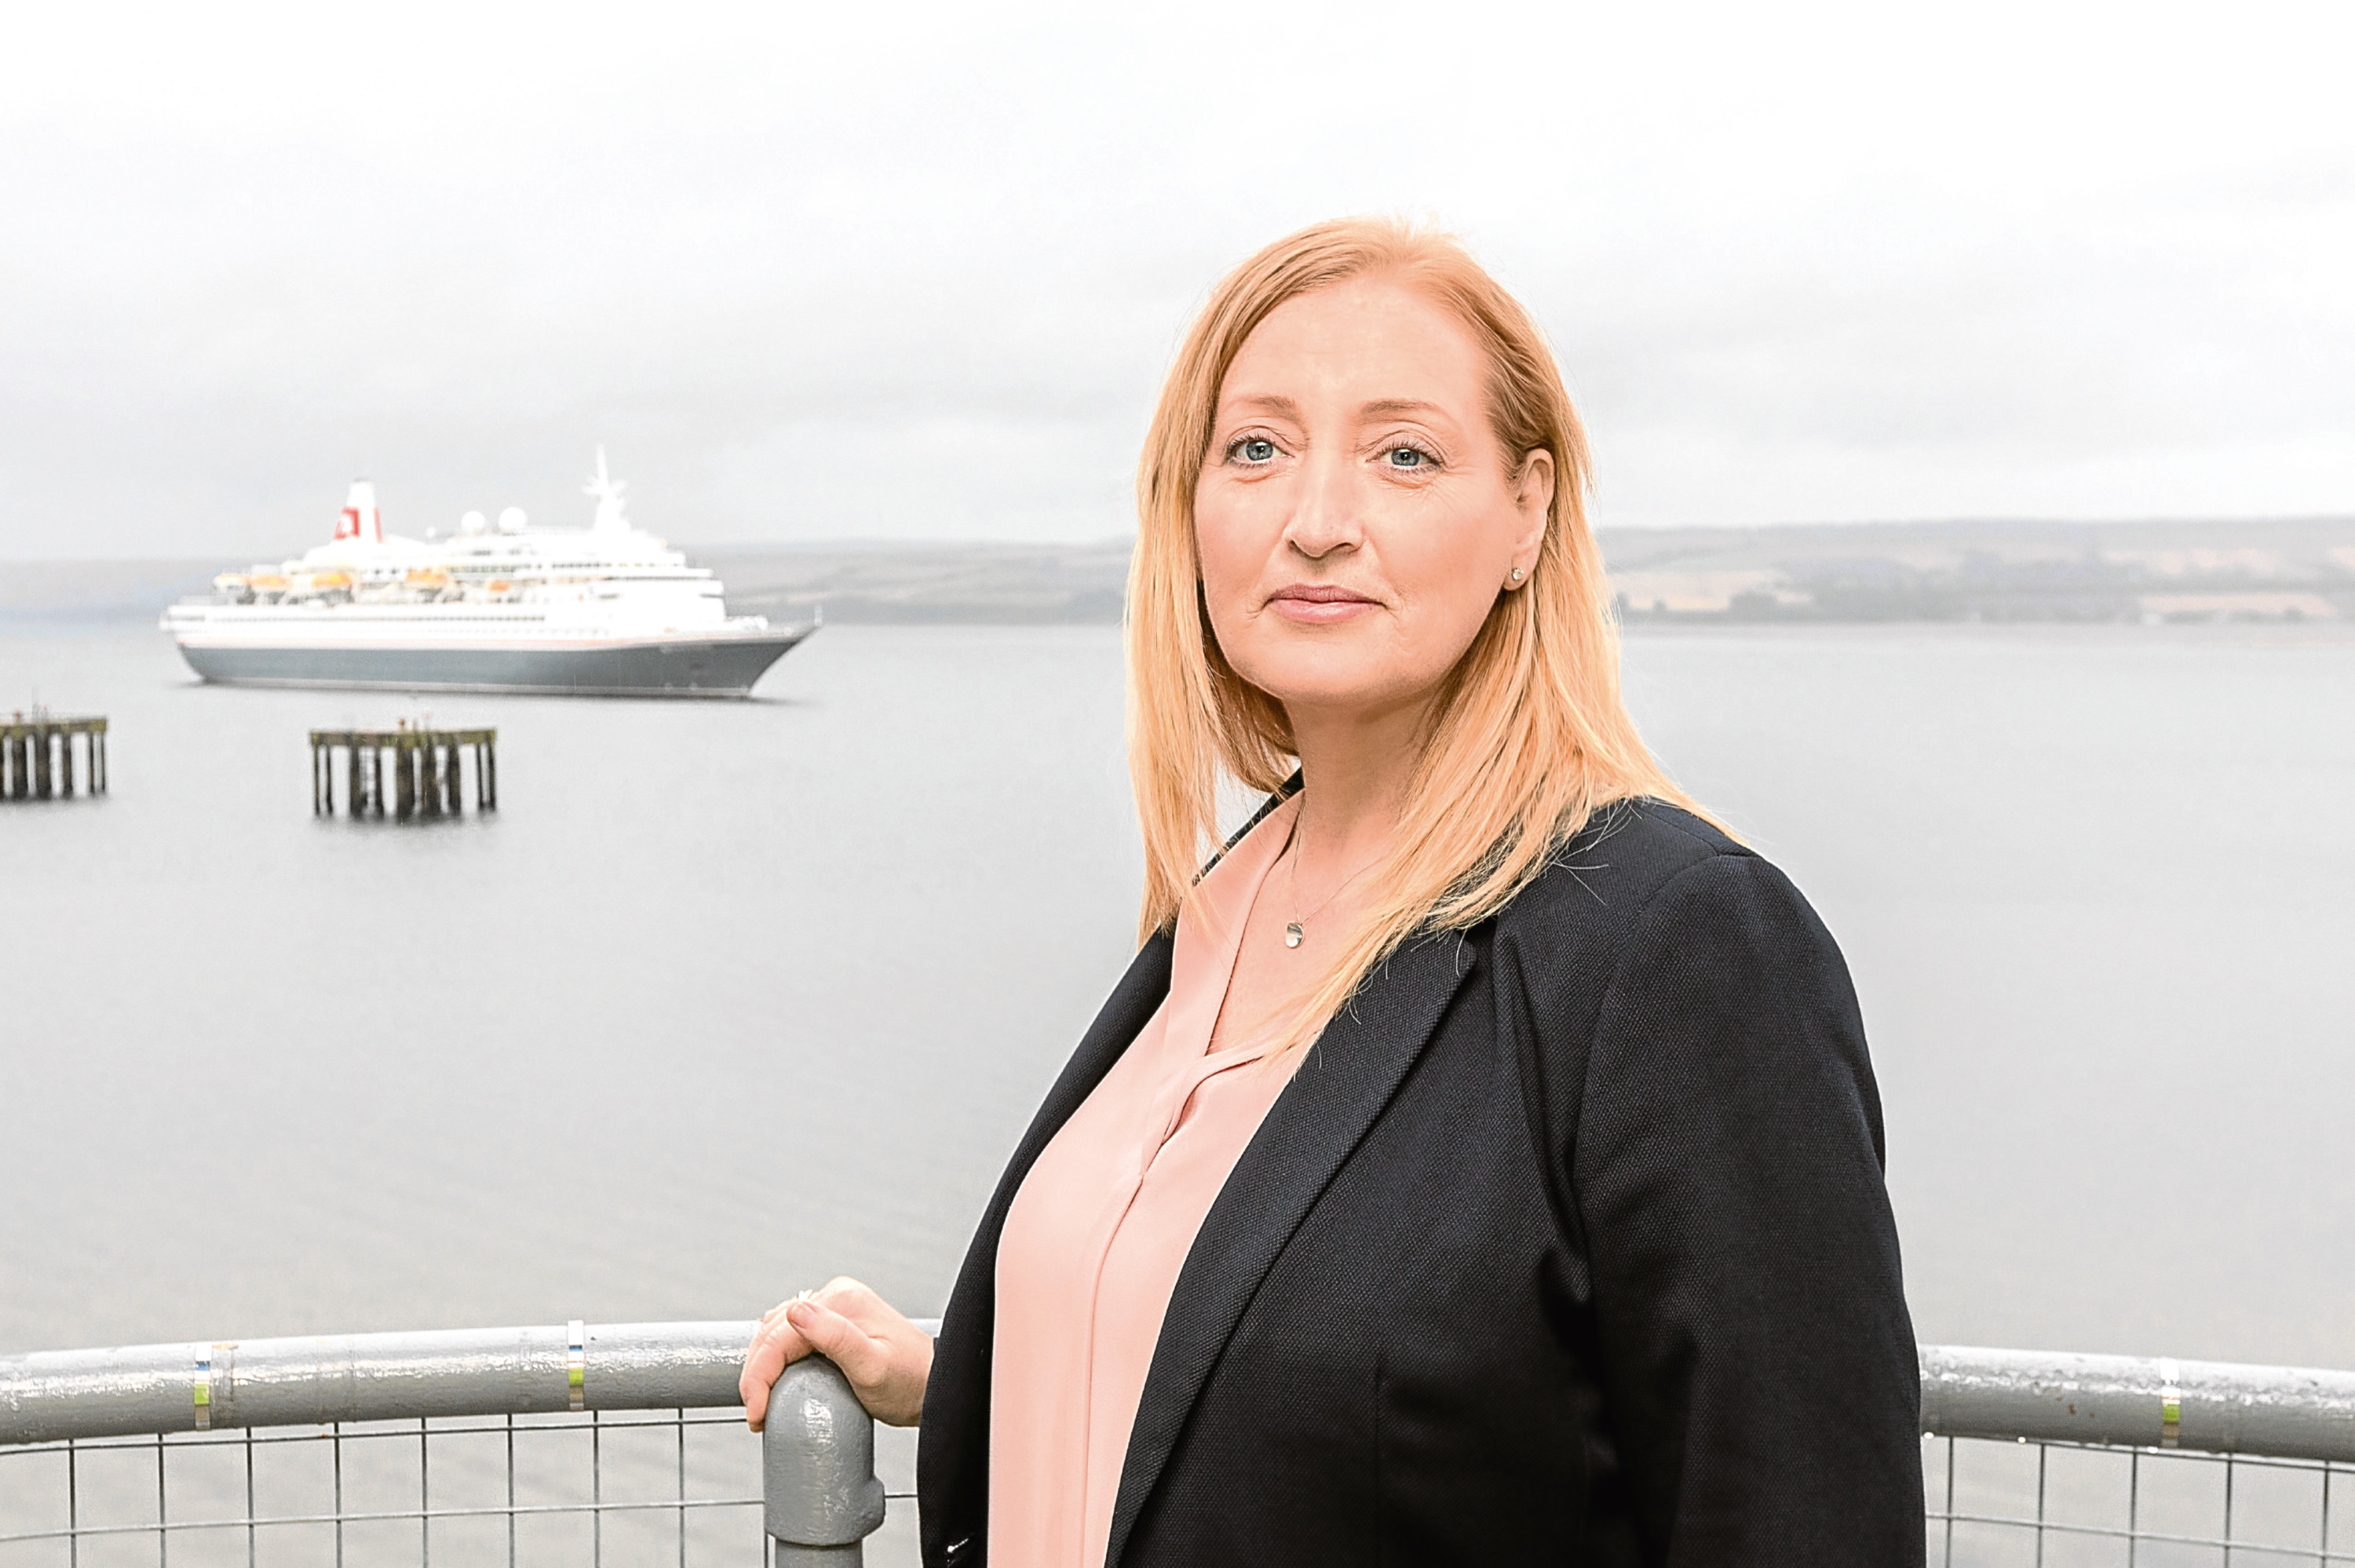 New Port of Cromarty Firth cruise manager Allison McGuire